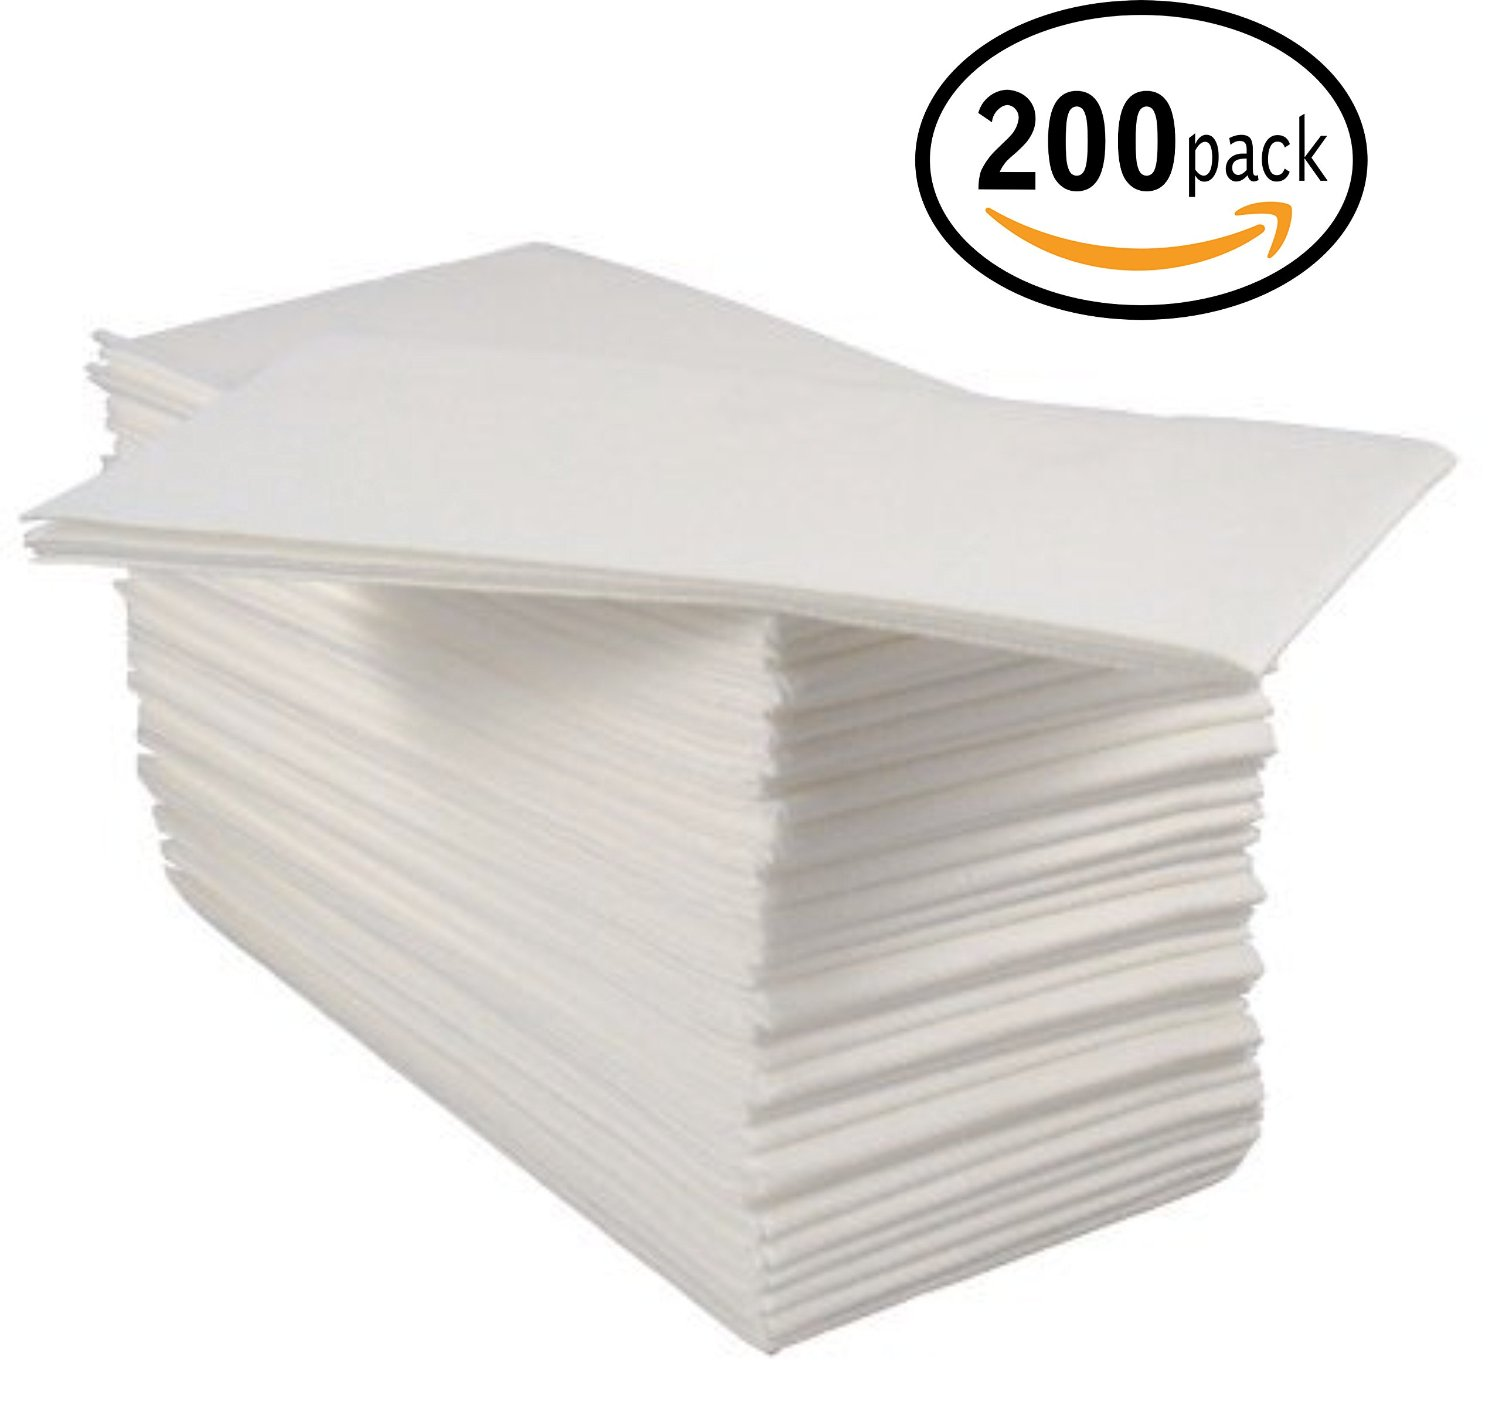 Touch-of-Linen, Disposable Cloth-Like Tissue Paper, Hand Napkins / Linen-Feel Guest Towels, White, Pack of 100